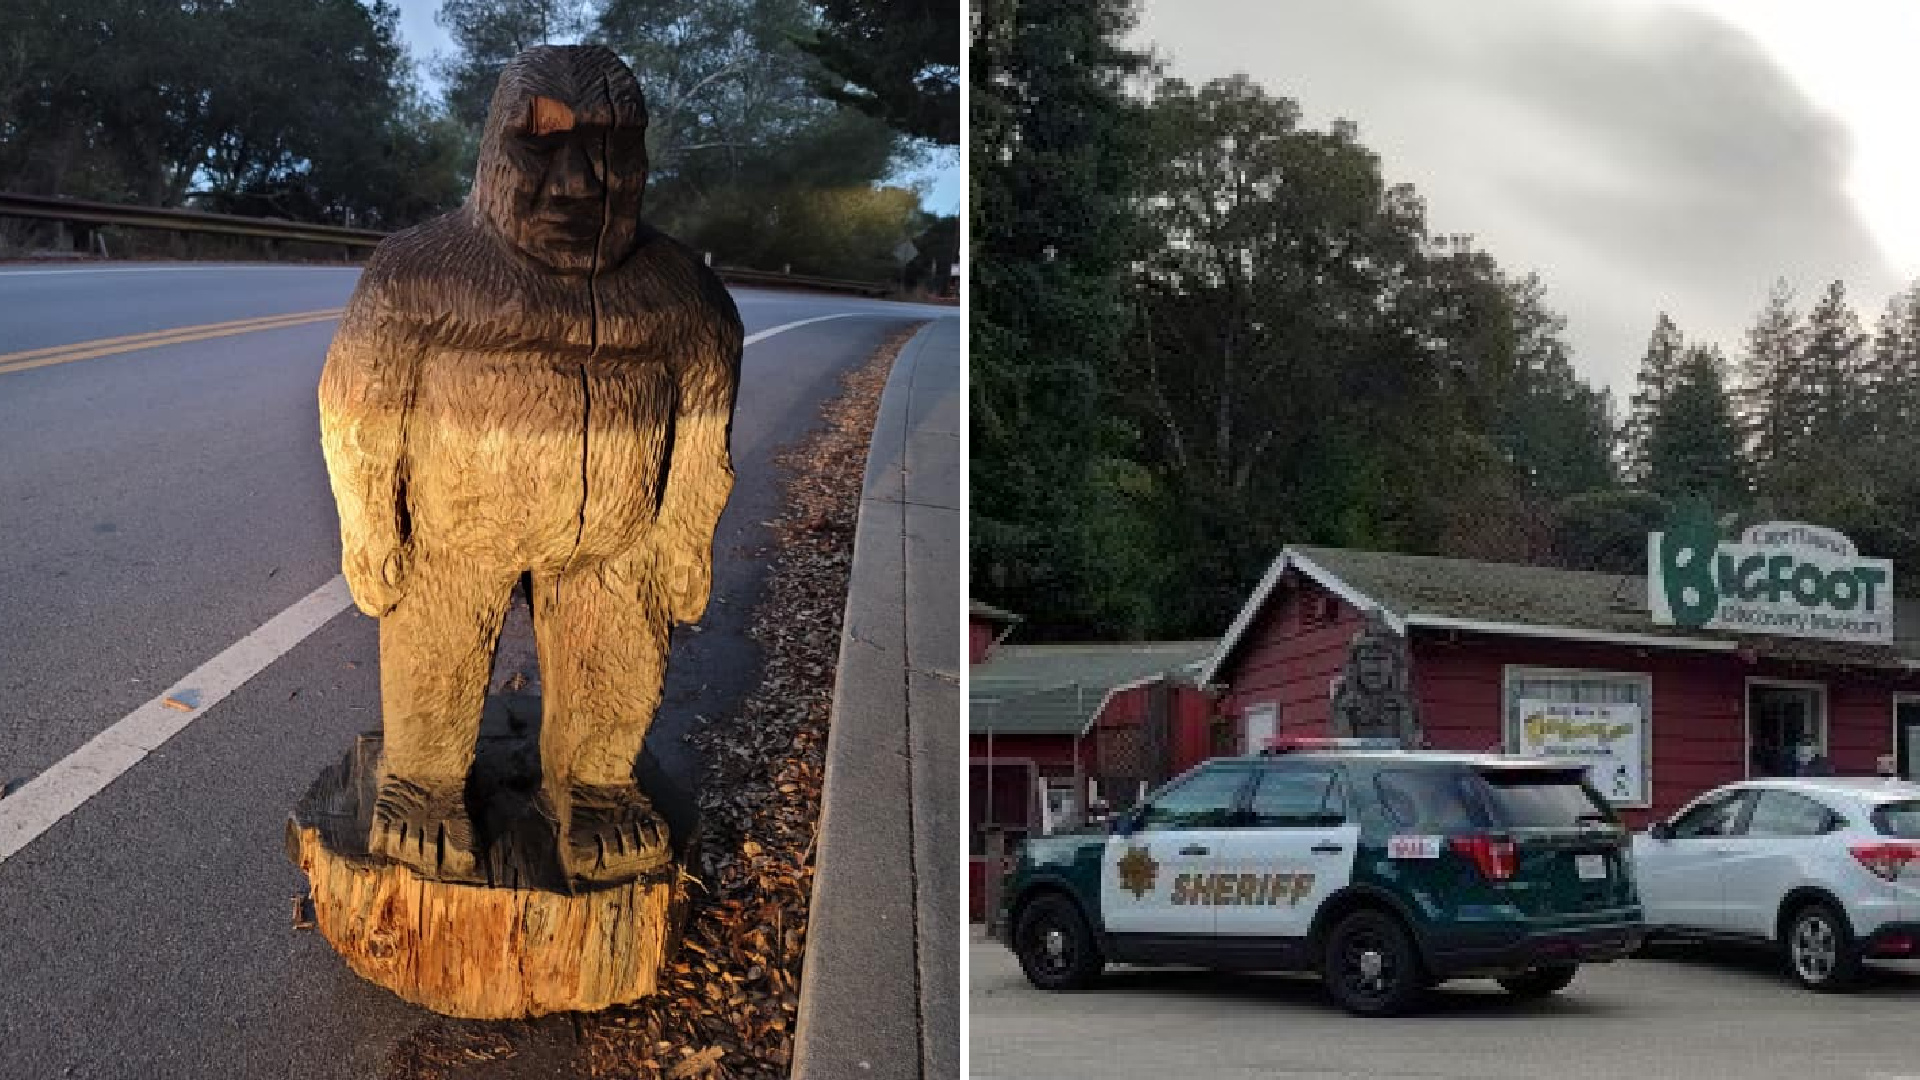 A Bigfoot state found on the side of a road on Nov. 12, 2020 and the Bigfoot Discovery Museum are seen in photos released by the Scotts Valley Police Department and Santa Cruz County Sheriff's Office.